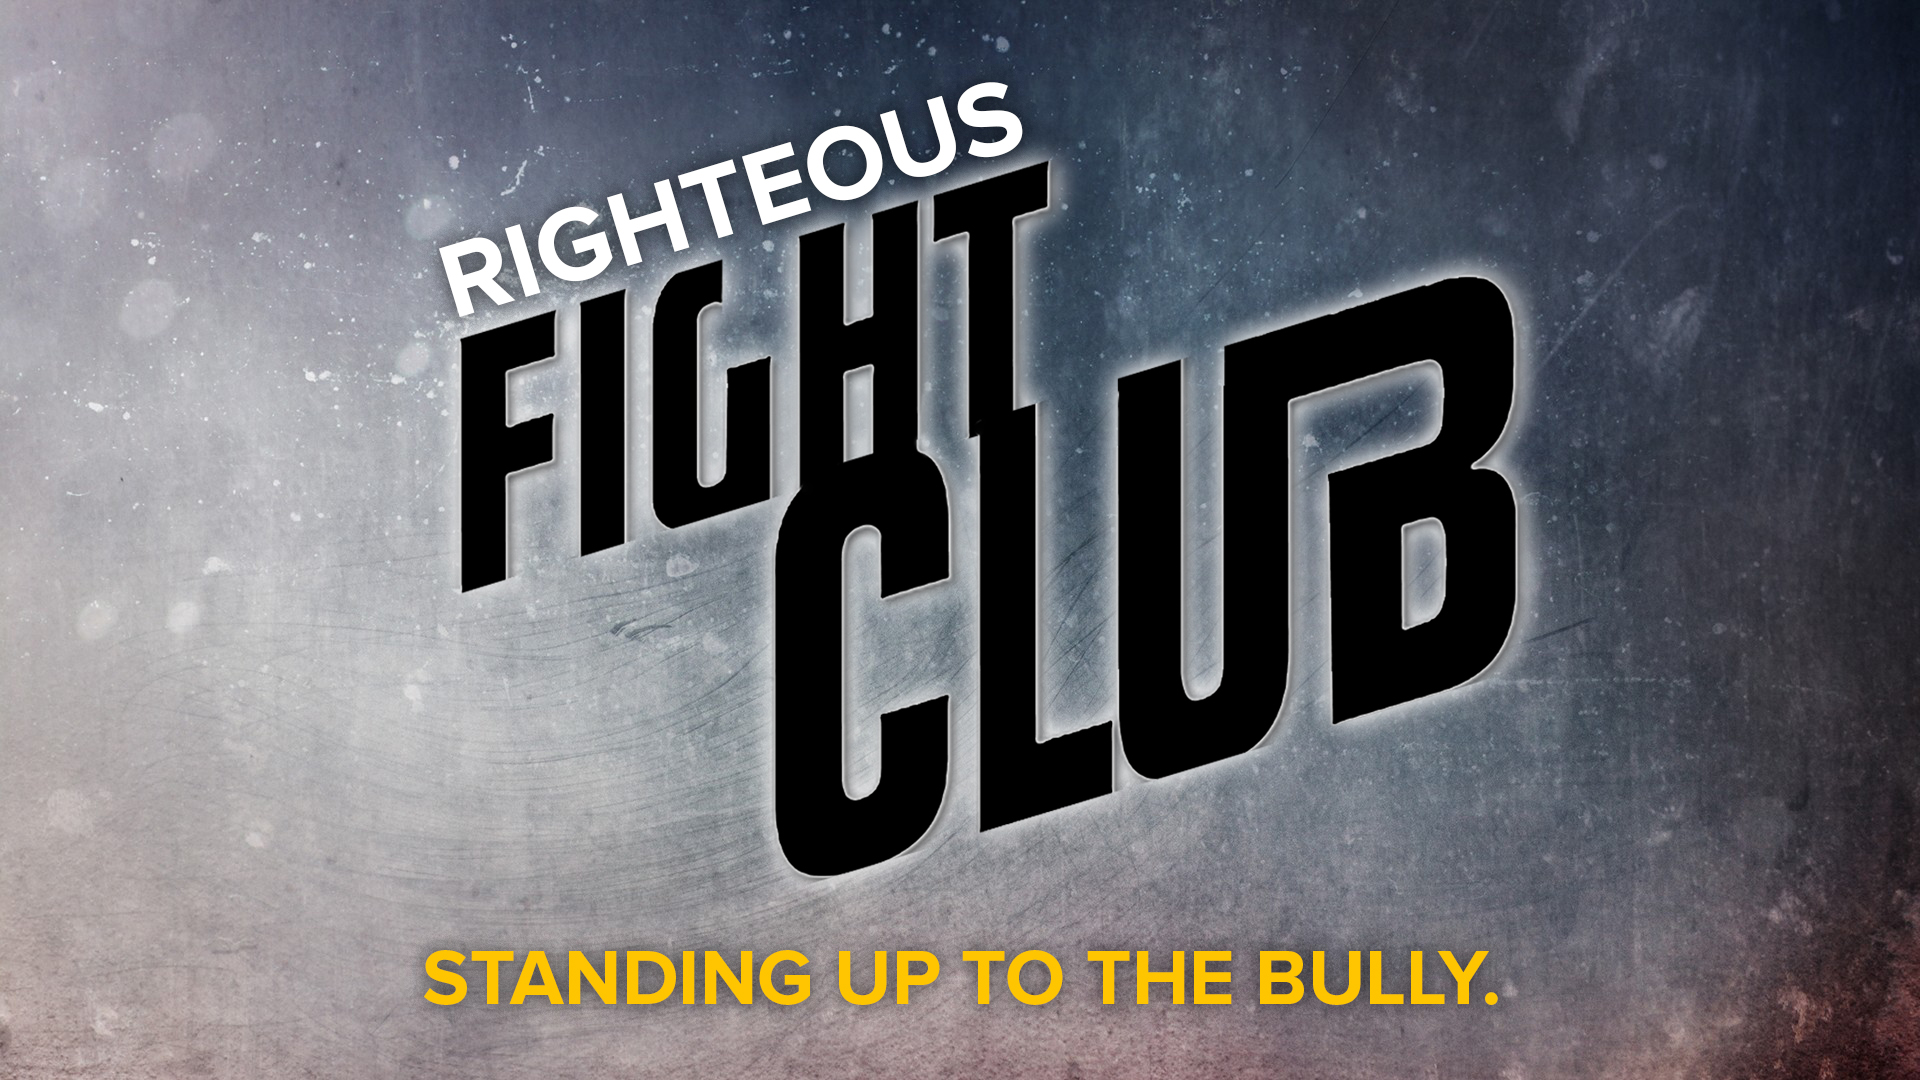 Righteous FightClub